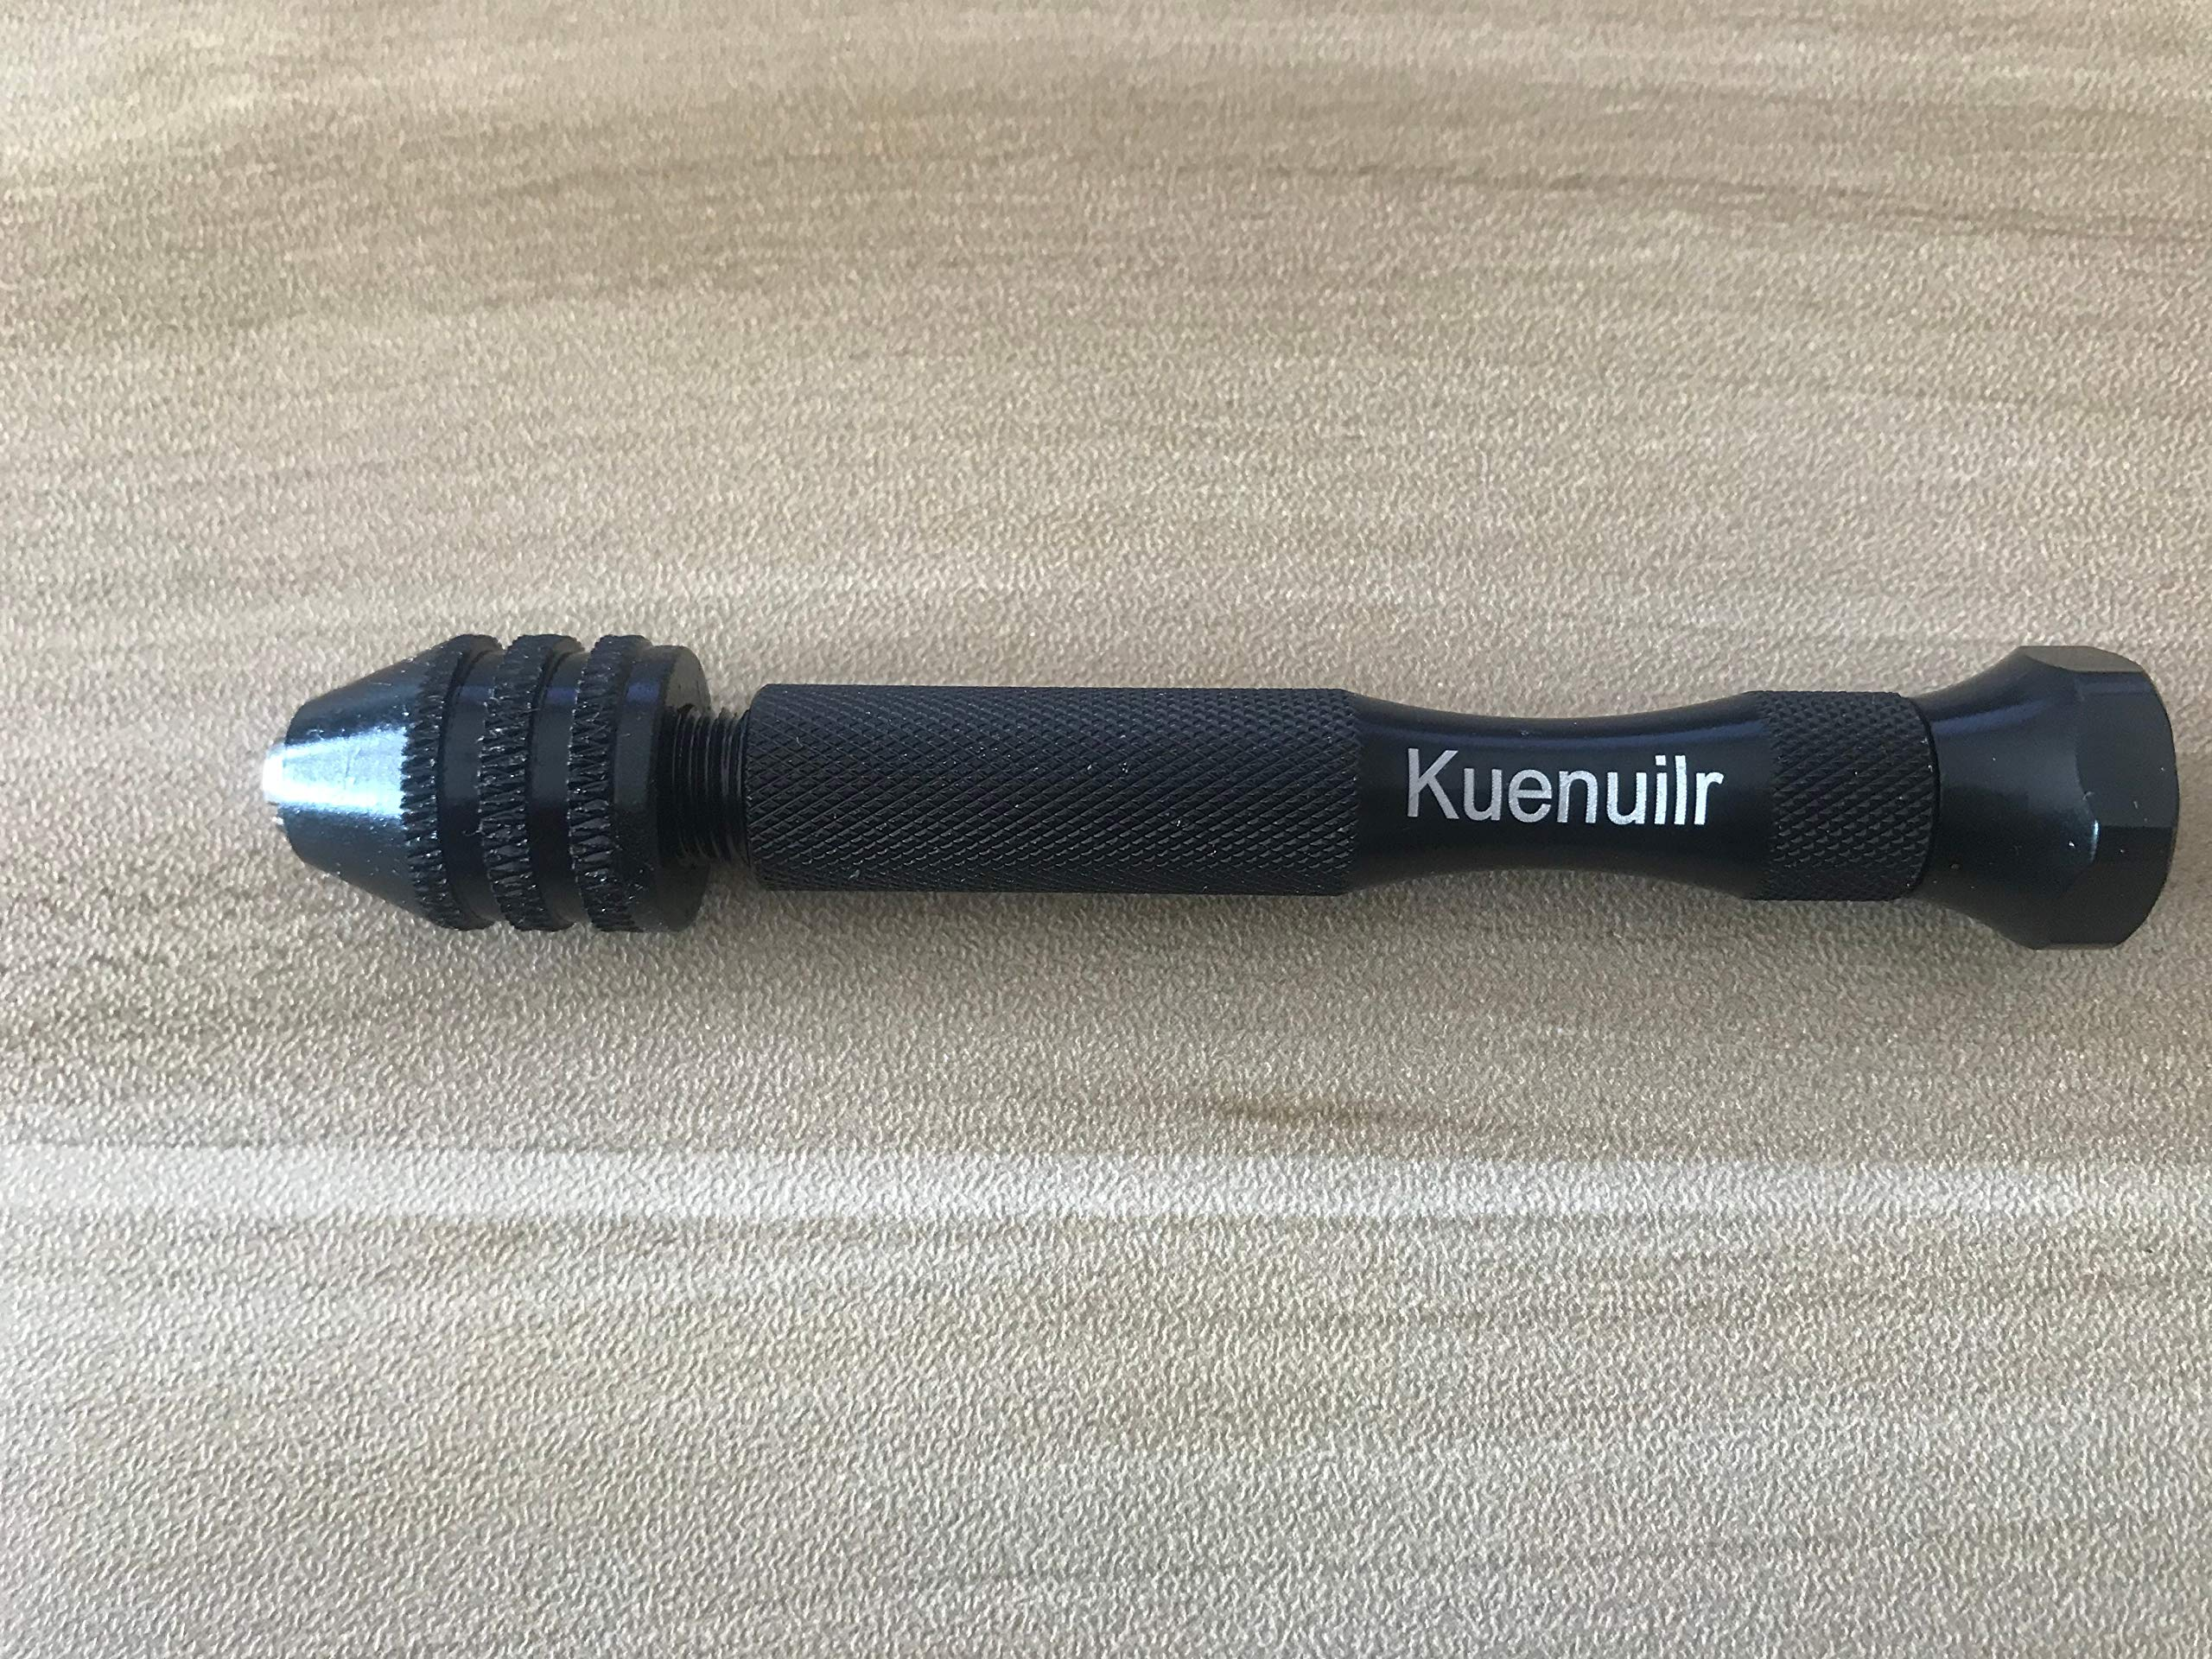 Kuenuilr Pin Vise Hand Drill with Twist Drill Bits